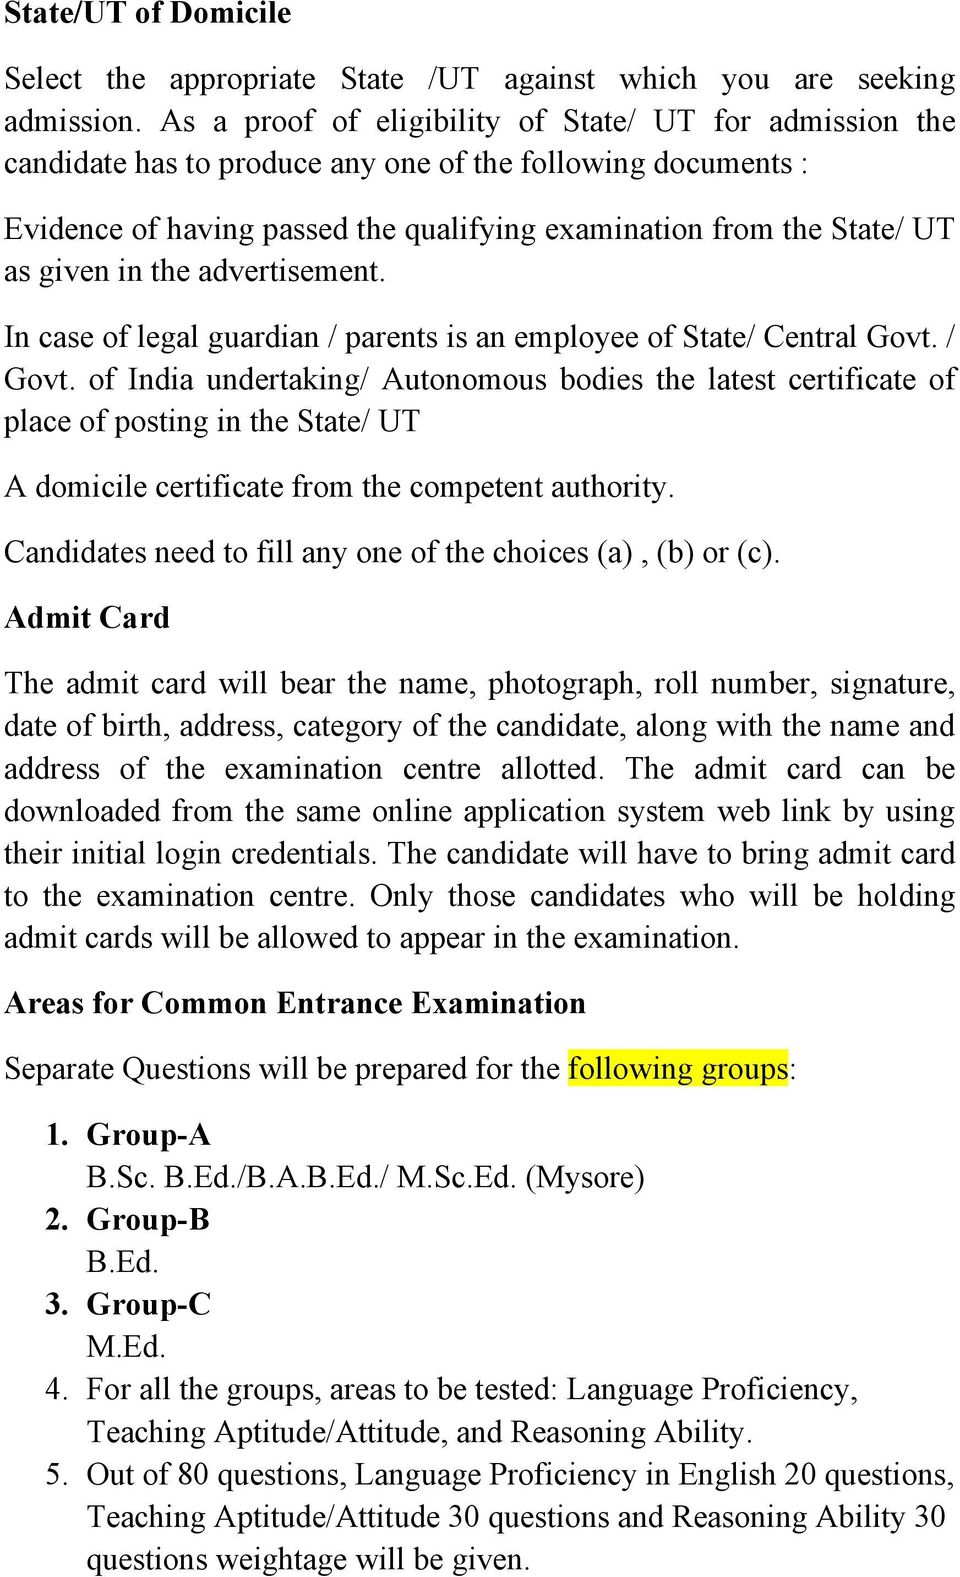 in the advertisement. In case of legal guardian / parents is an employee of State/ Central Govt. / Govt.